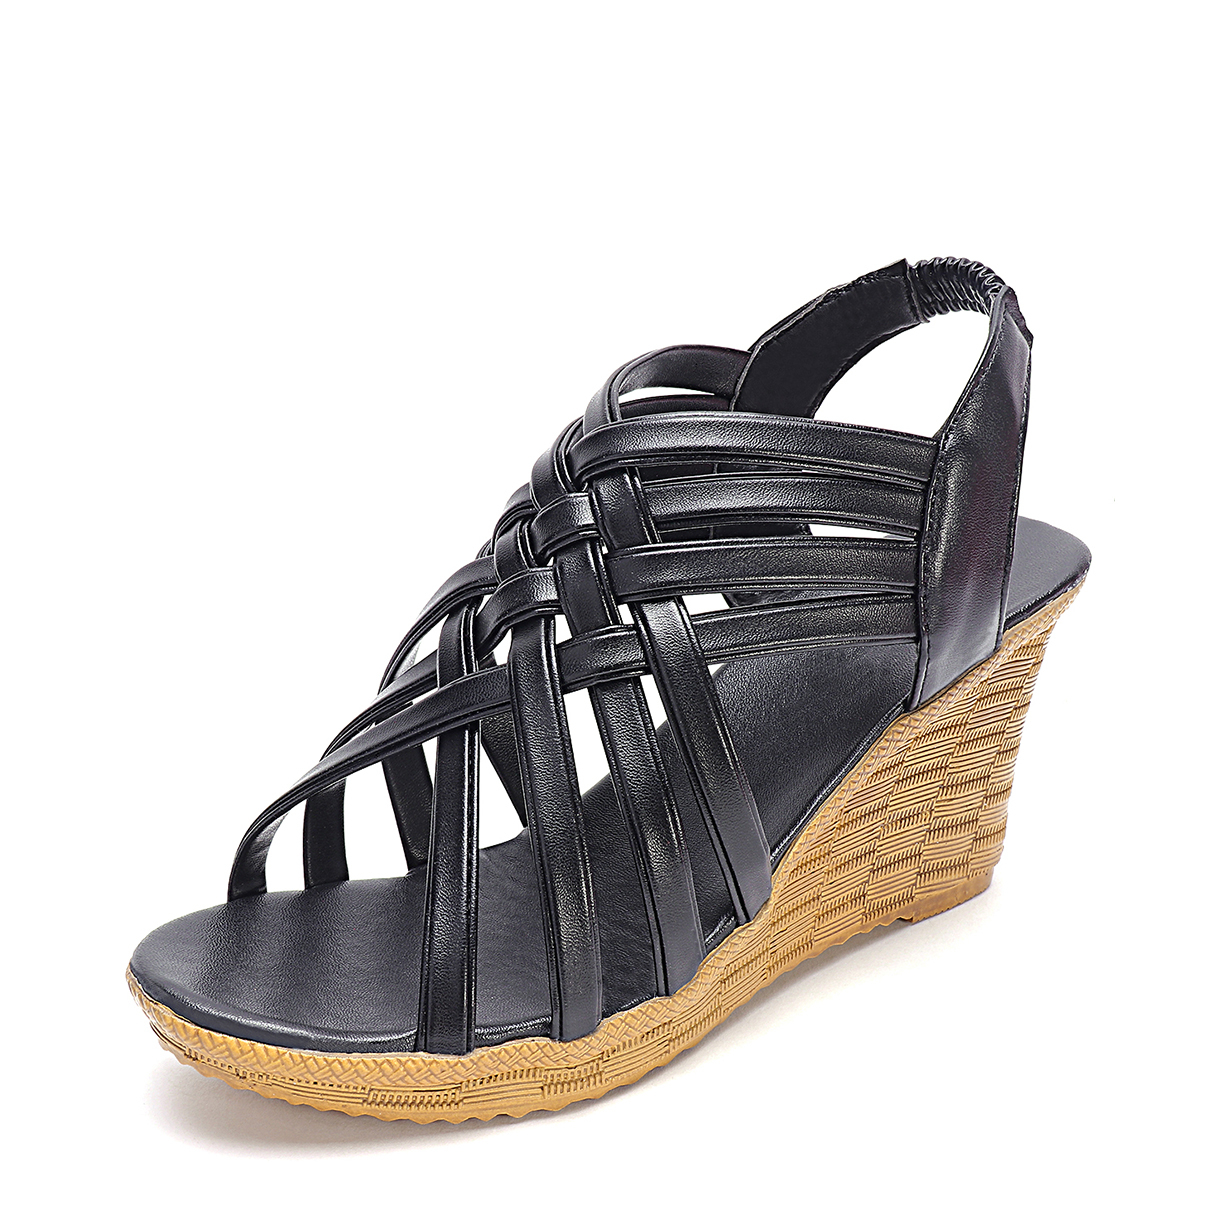 Black Criss Cross Design Wedge Sandals criss cross platform wedge sandals